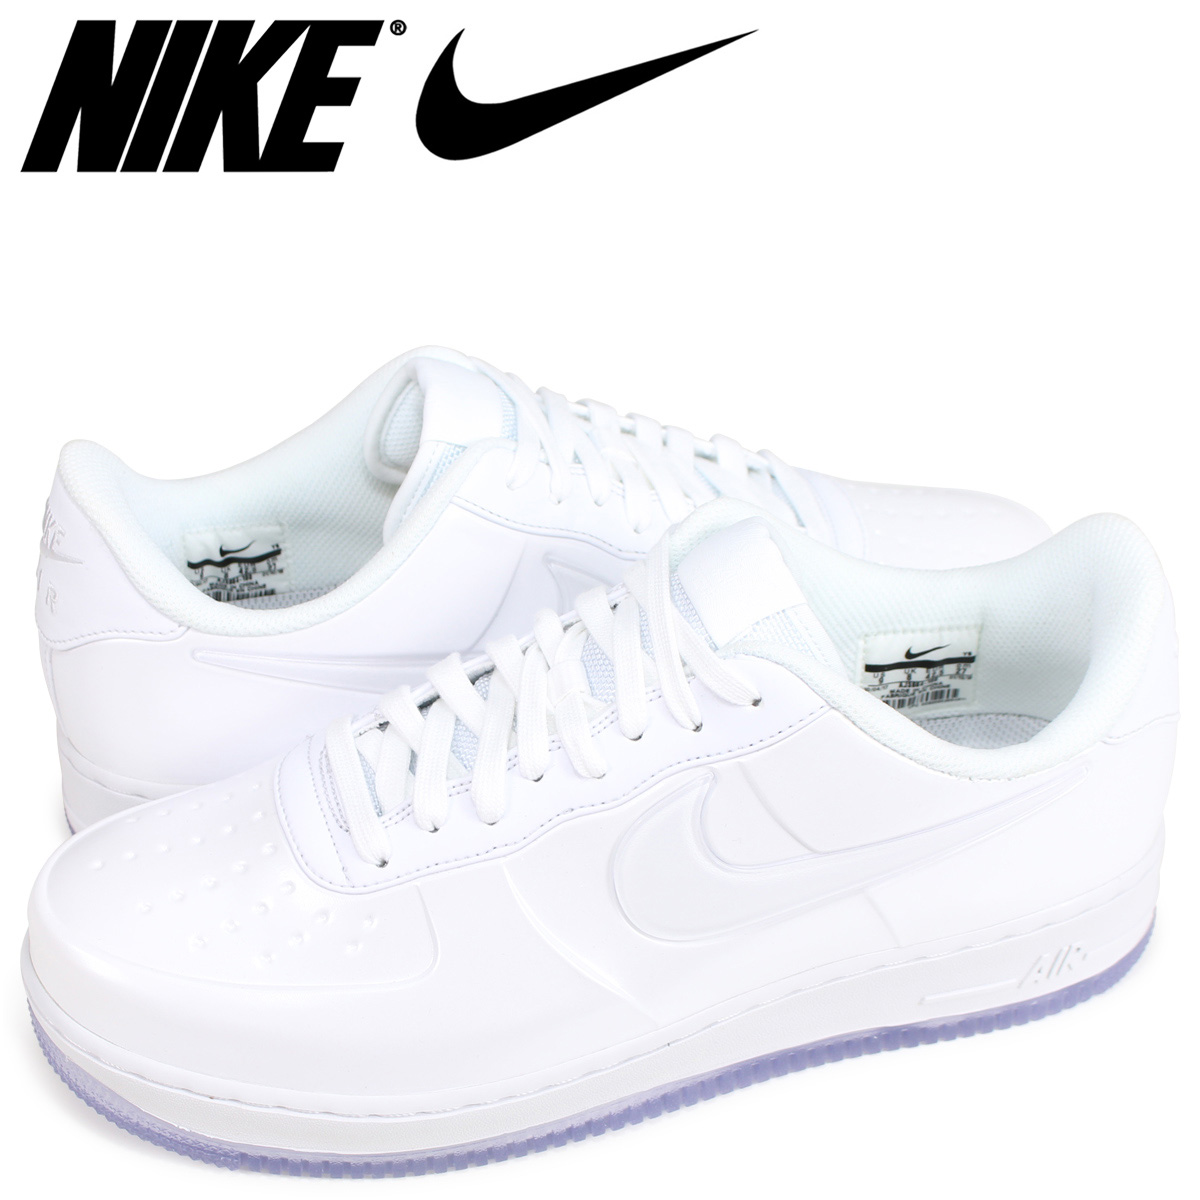 NIKE AIR FORCE 1 FOAMPOSITE PRO CUP Nike air force 1 sneakers men white AF1 AJ3664 100